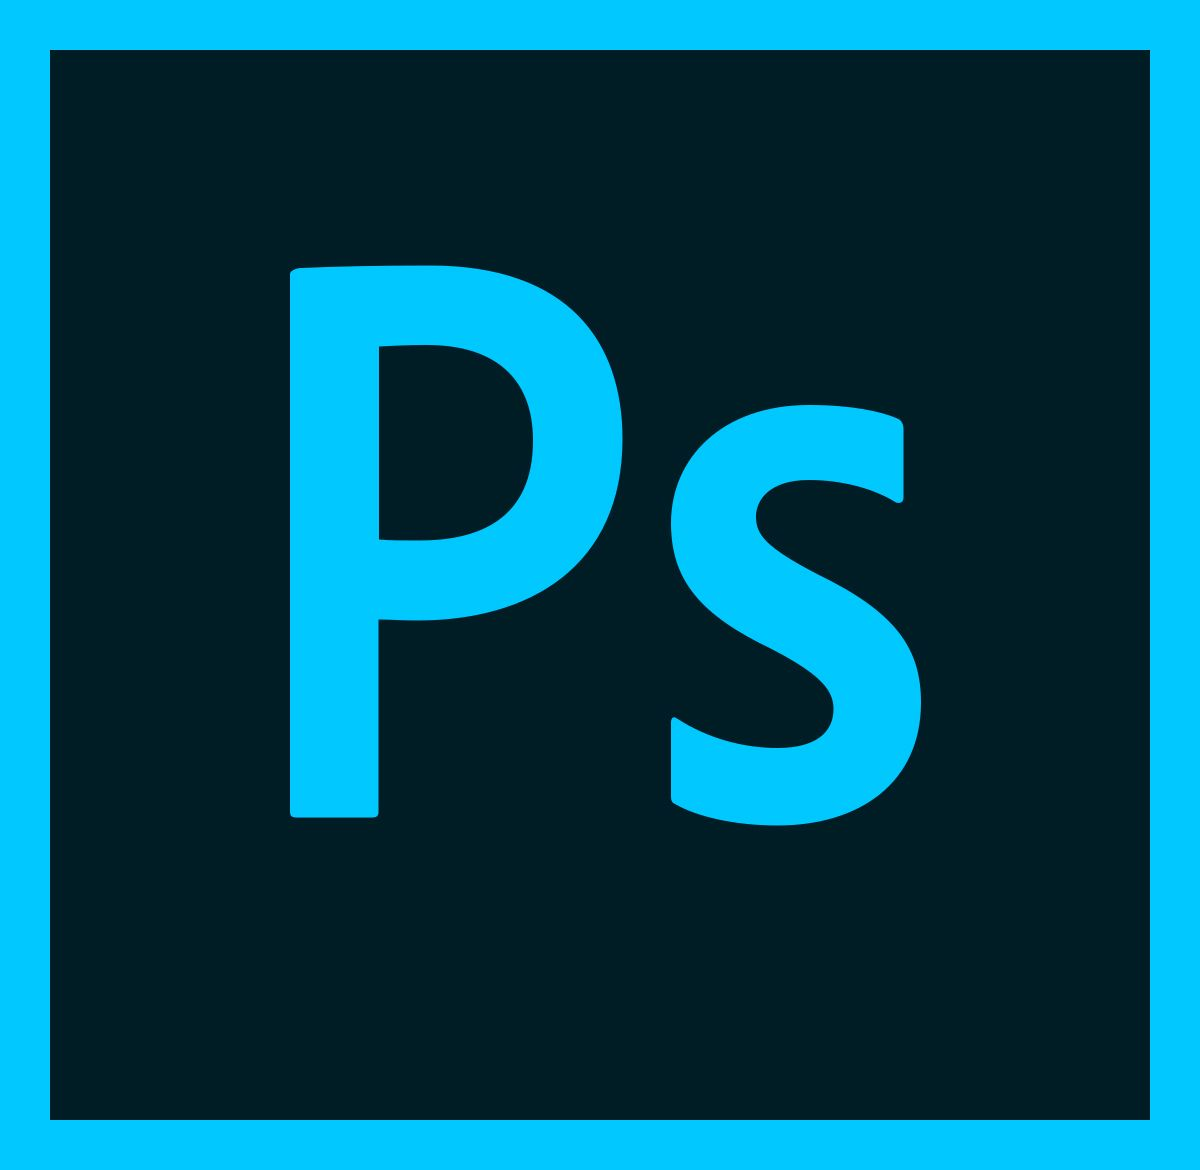 Download Adobe Photoshop: how to try Photoshop free or with